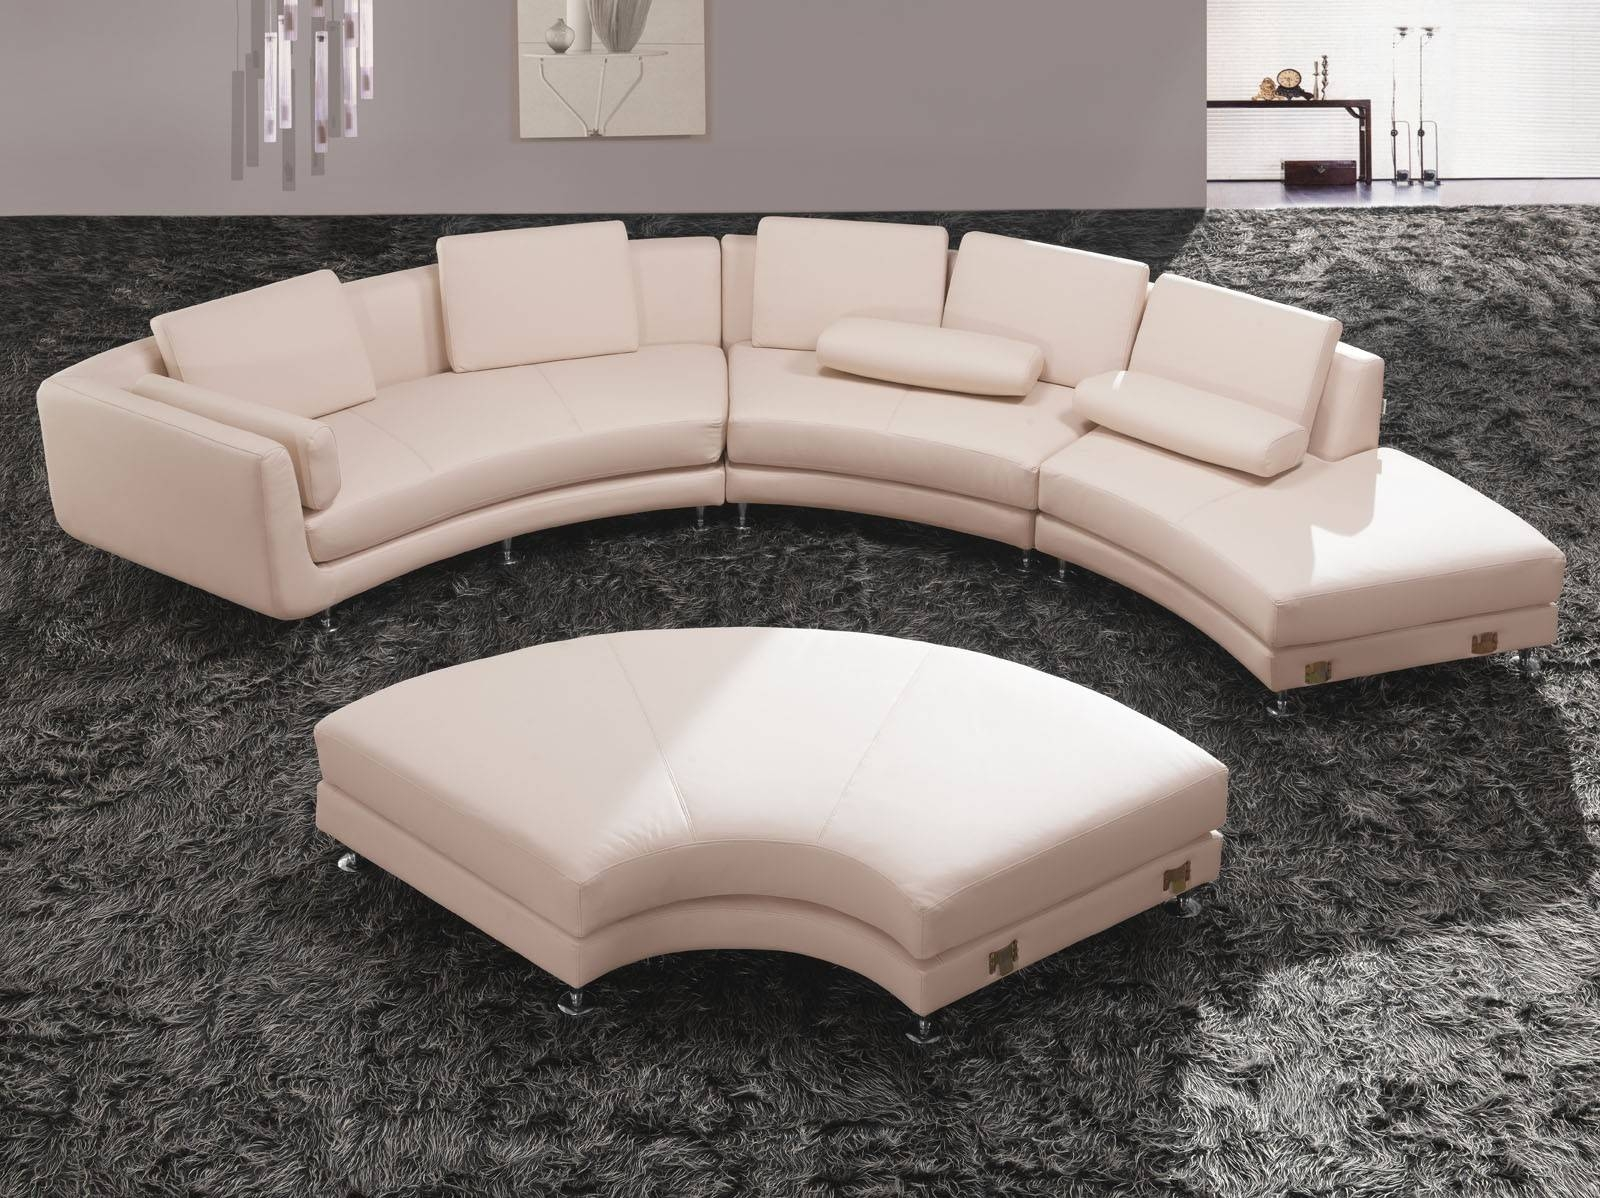 Sofas Center : Stirring Circle Sectional Sofa Photoncept Circular for Circle Sofas (Image 25 of 25)